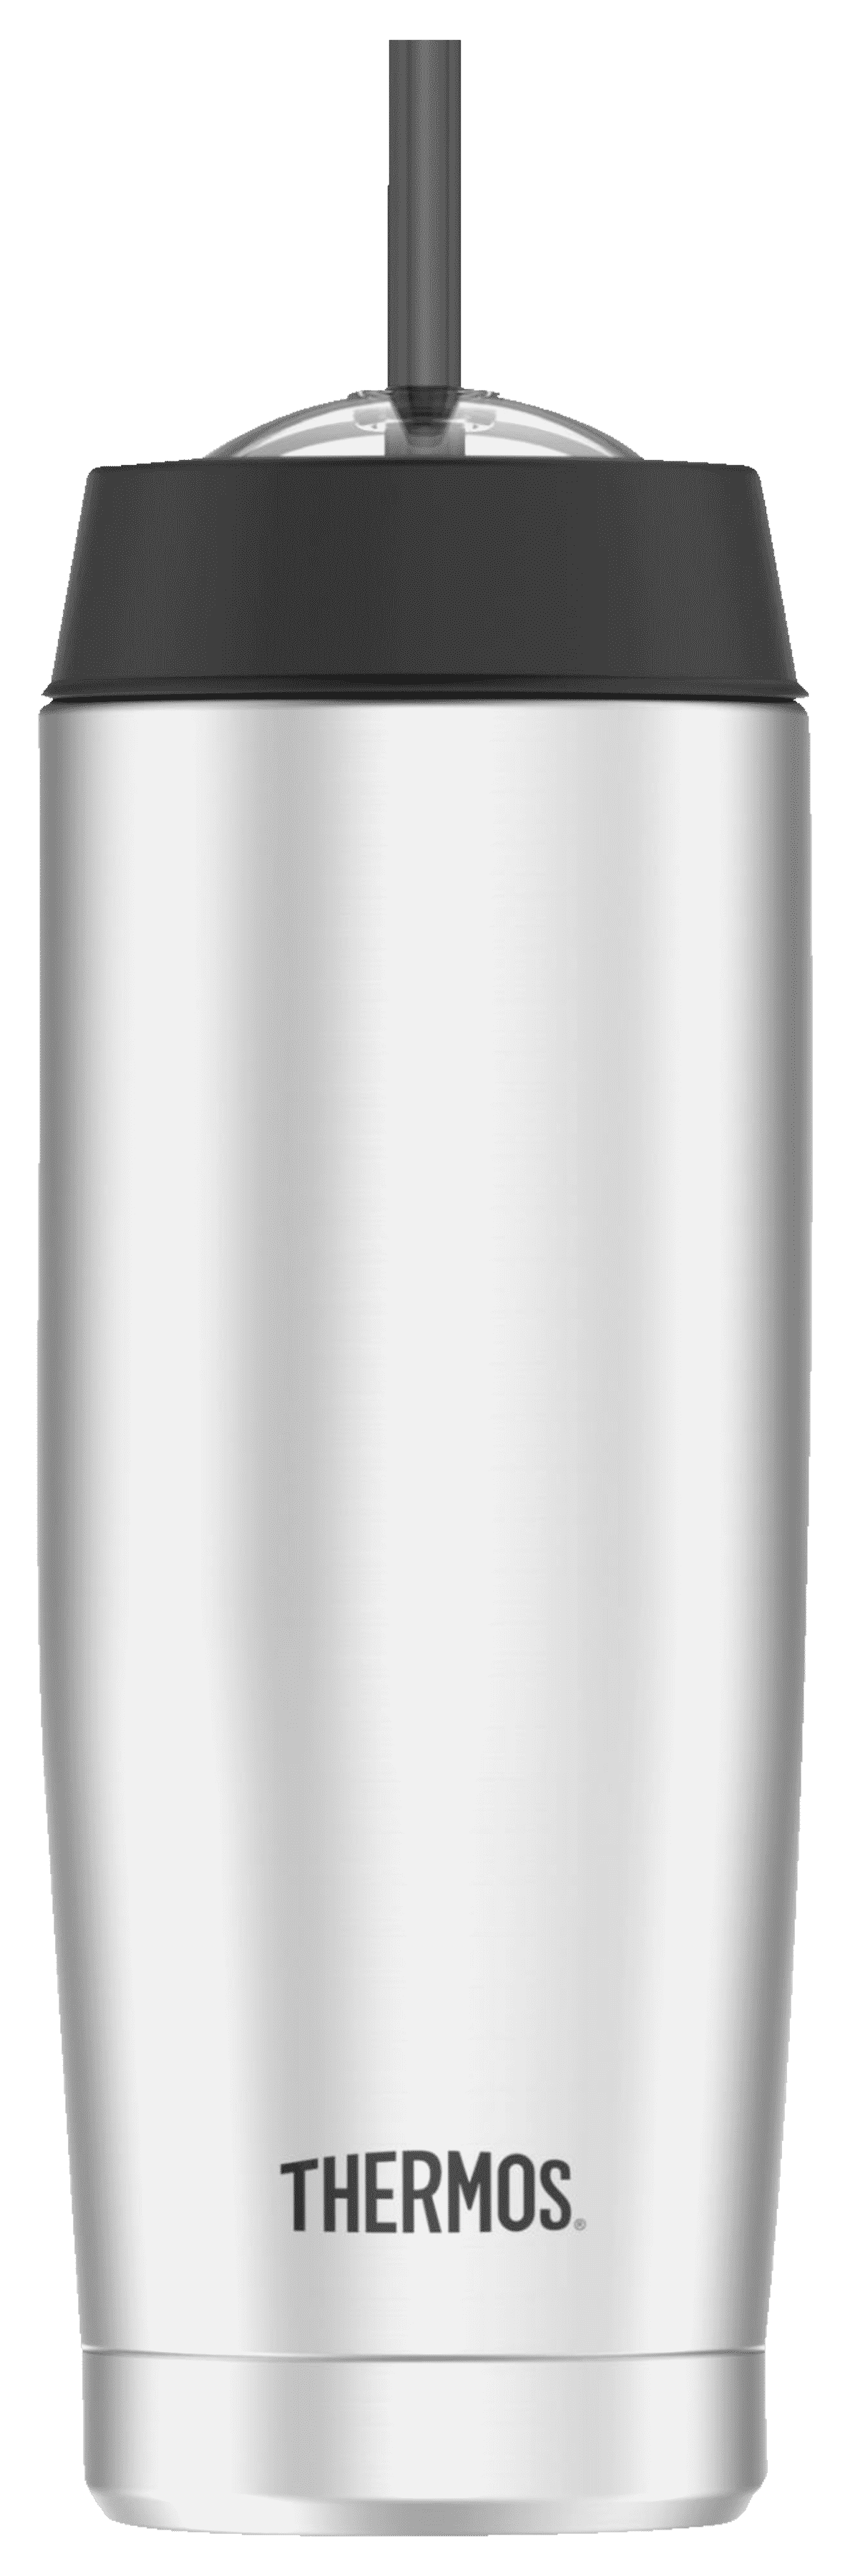 THERMOS  4029.205.047 Cold Cup Thermobecher in Silber | 05010576925213